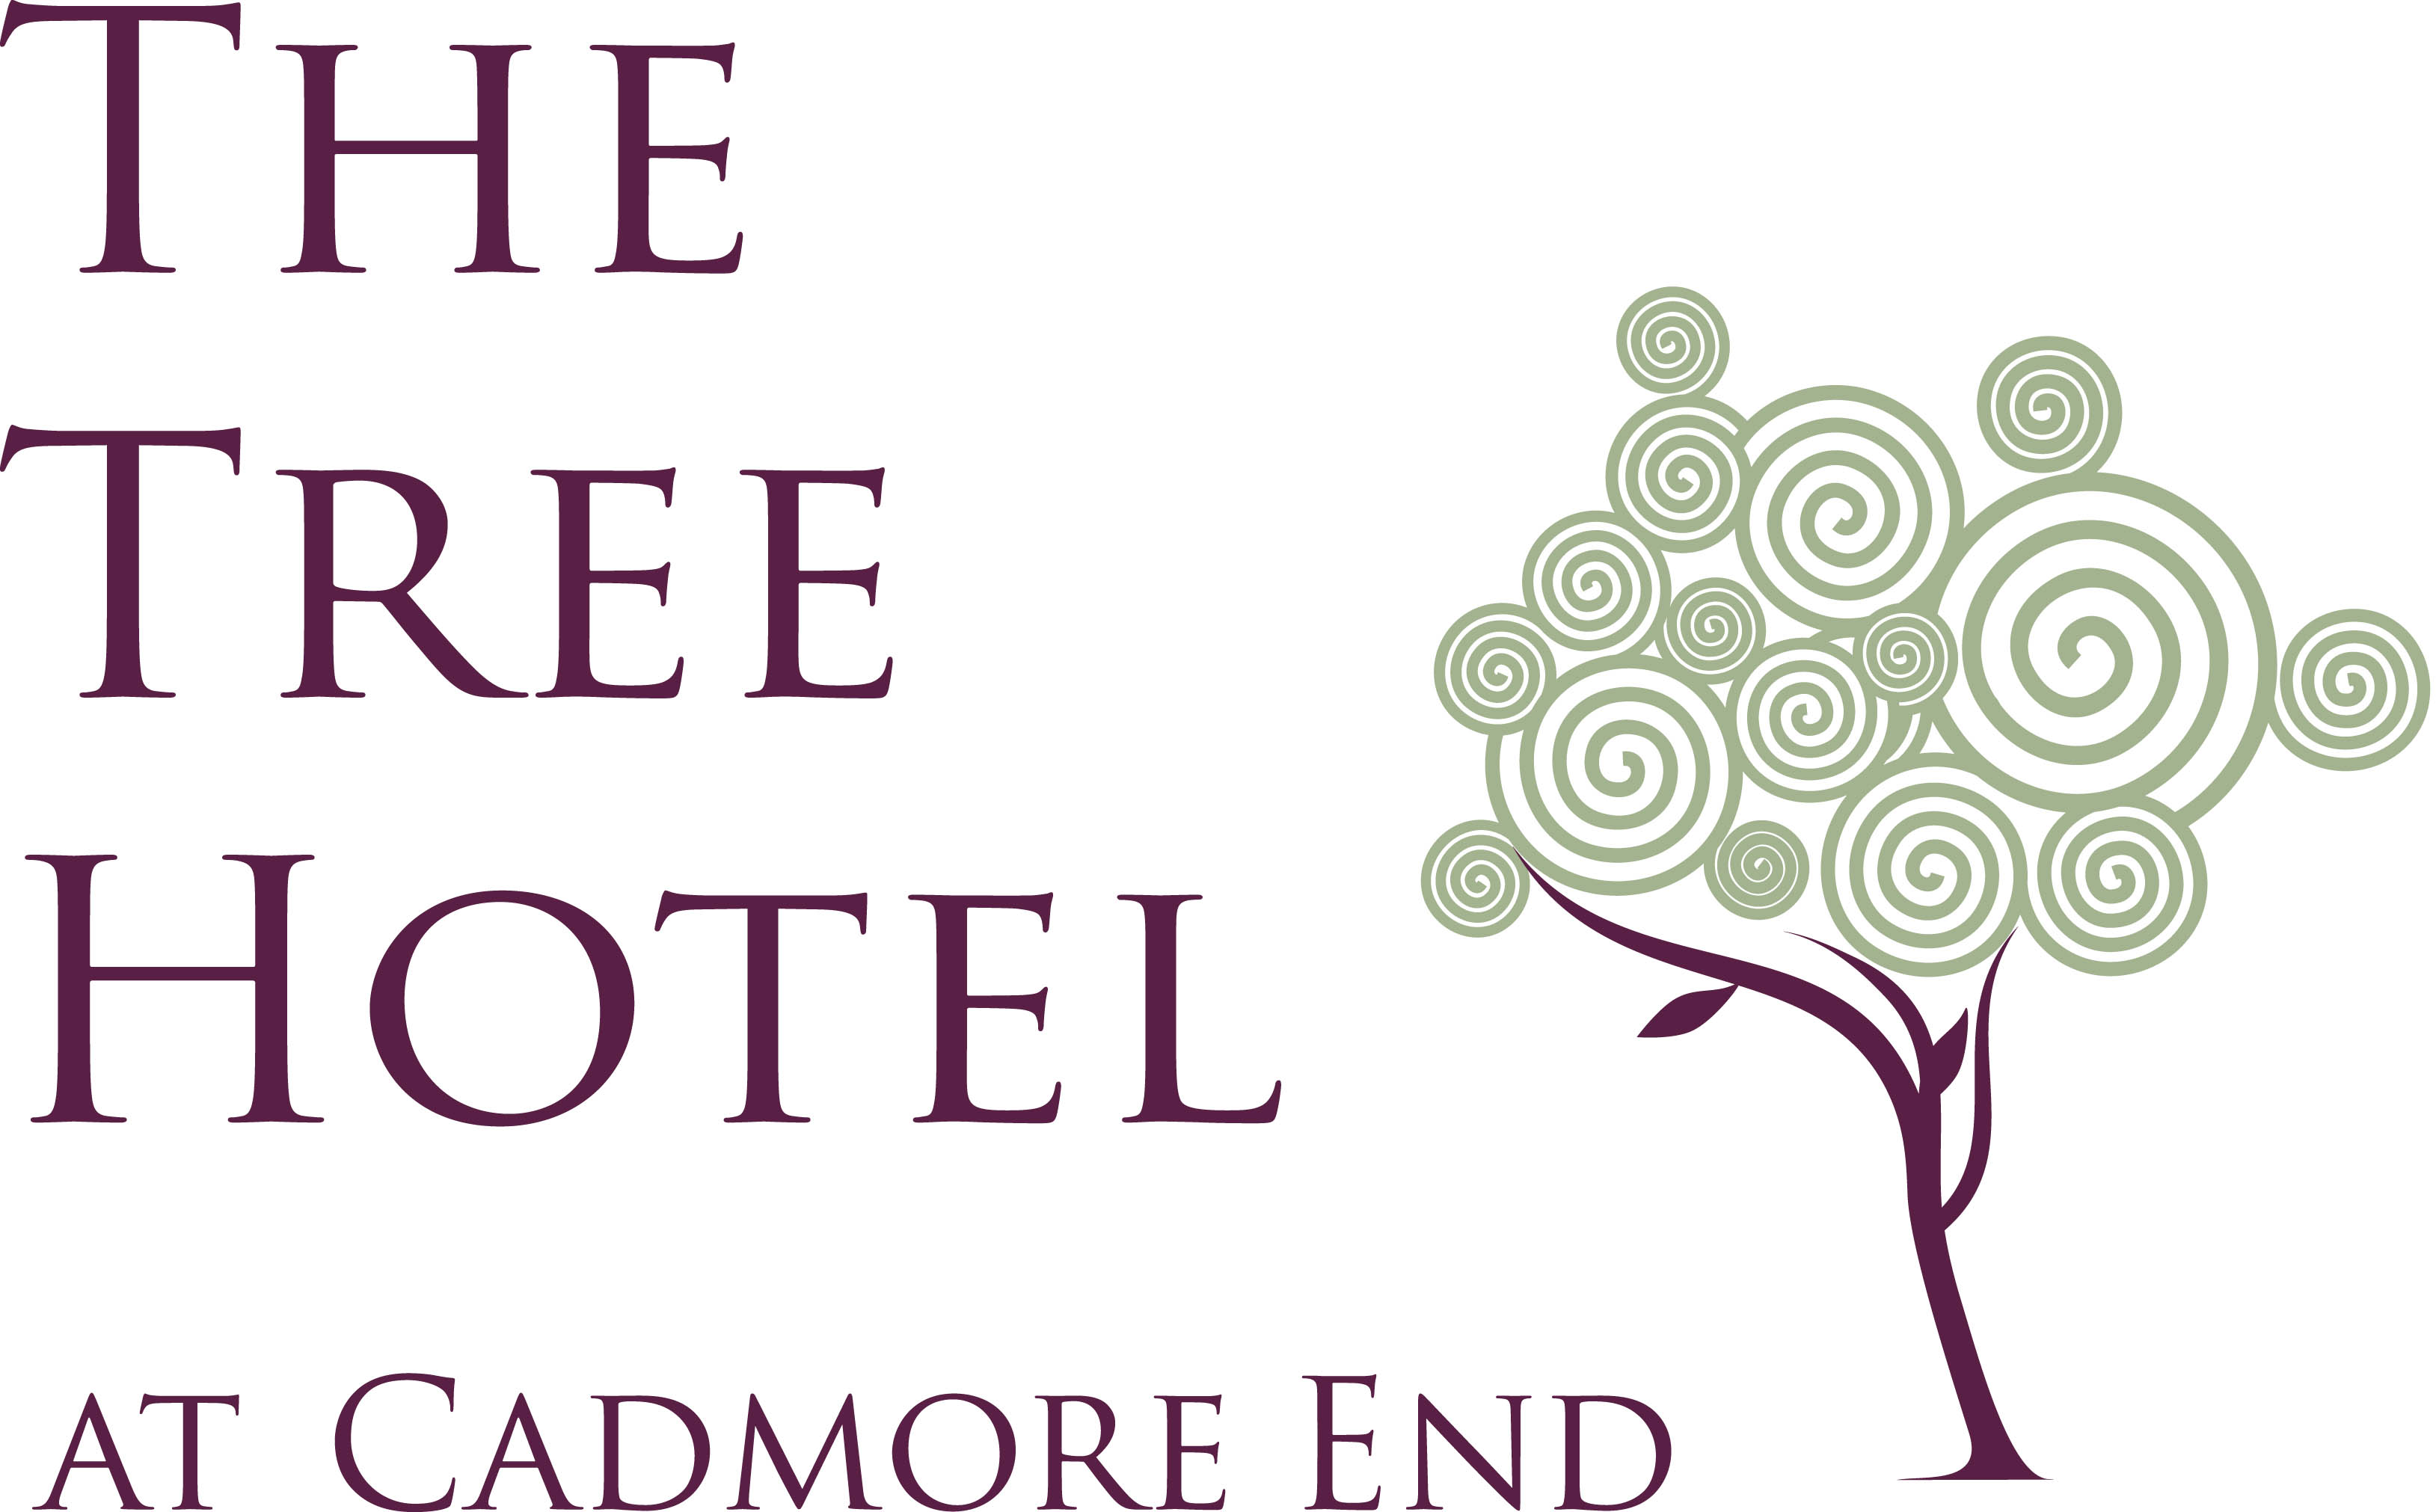 The Tree Hotel at Cadmore End